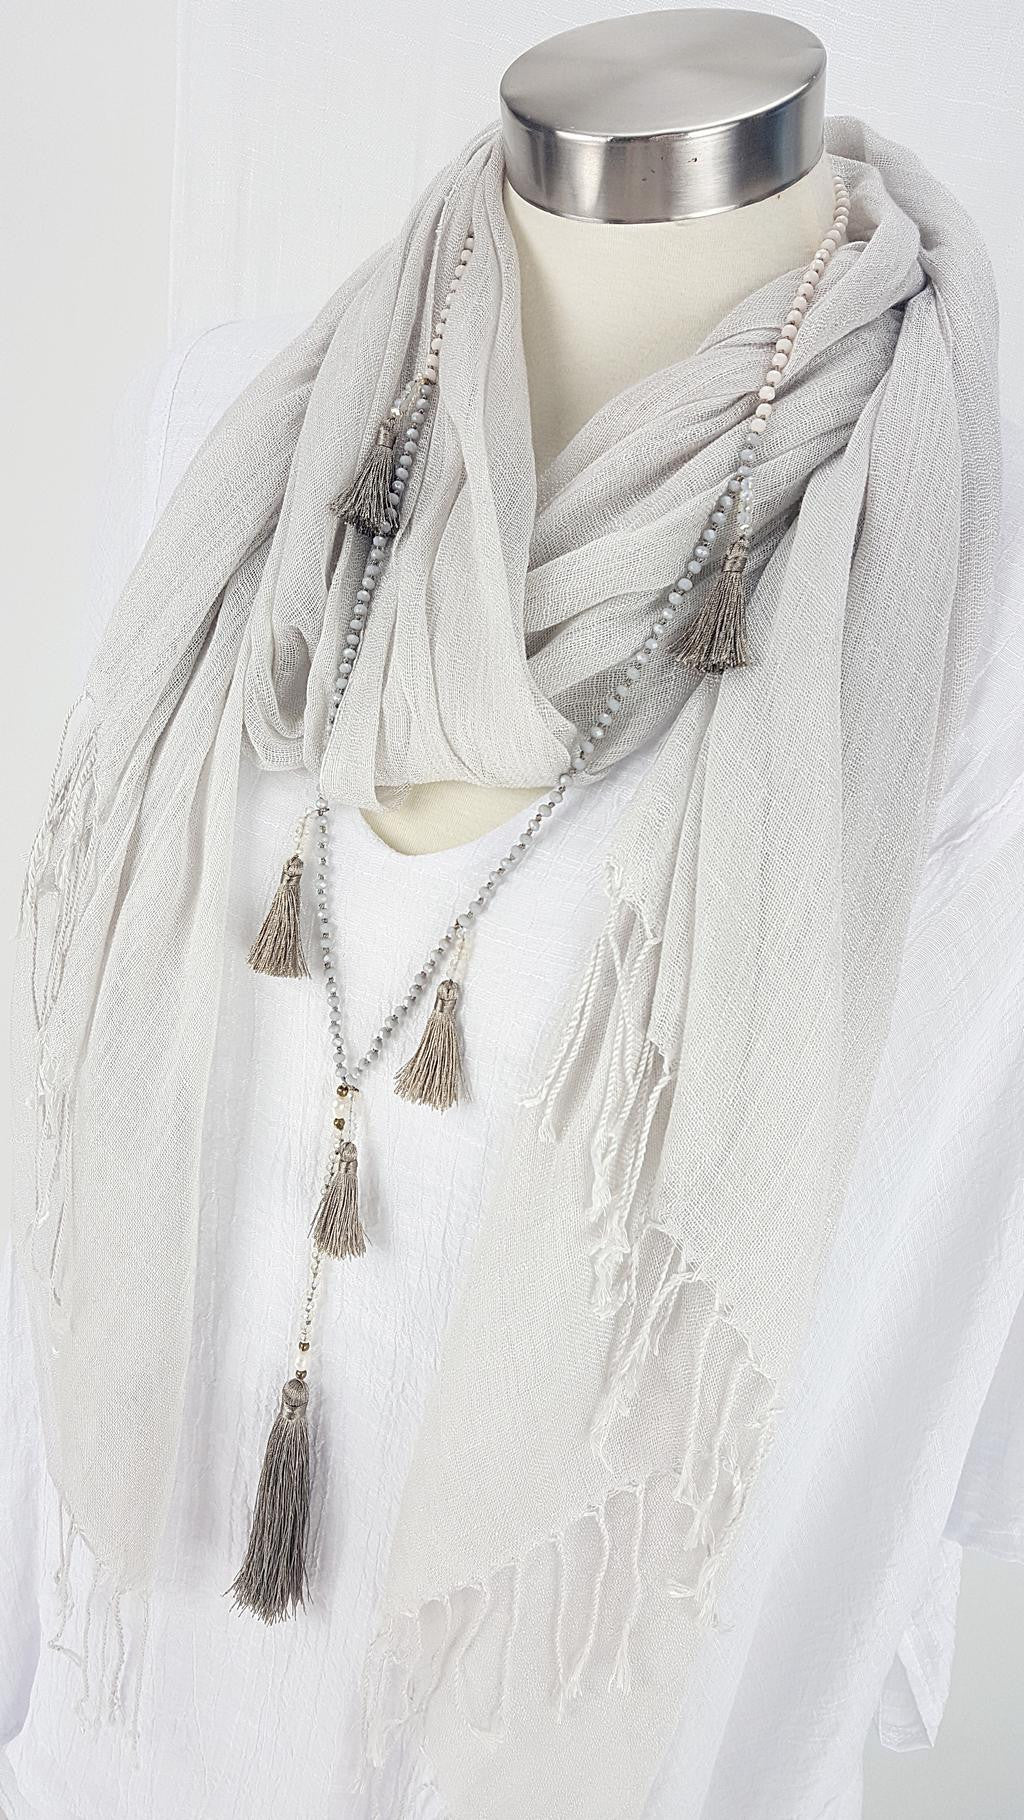 Stunning handmade multi-tassel long beaded necklace. Womens 20s style necklace. Mocha.